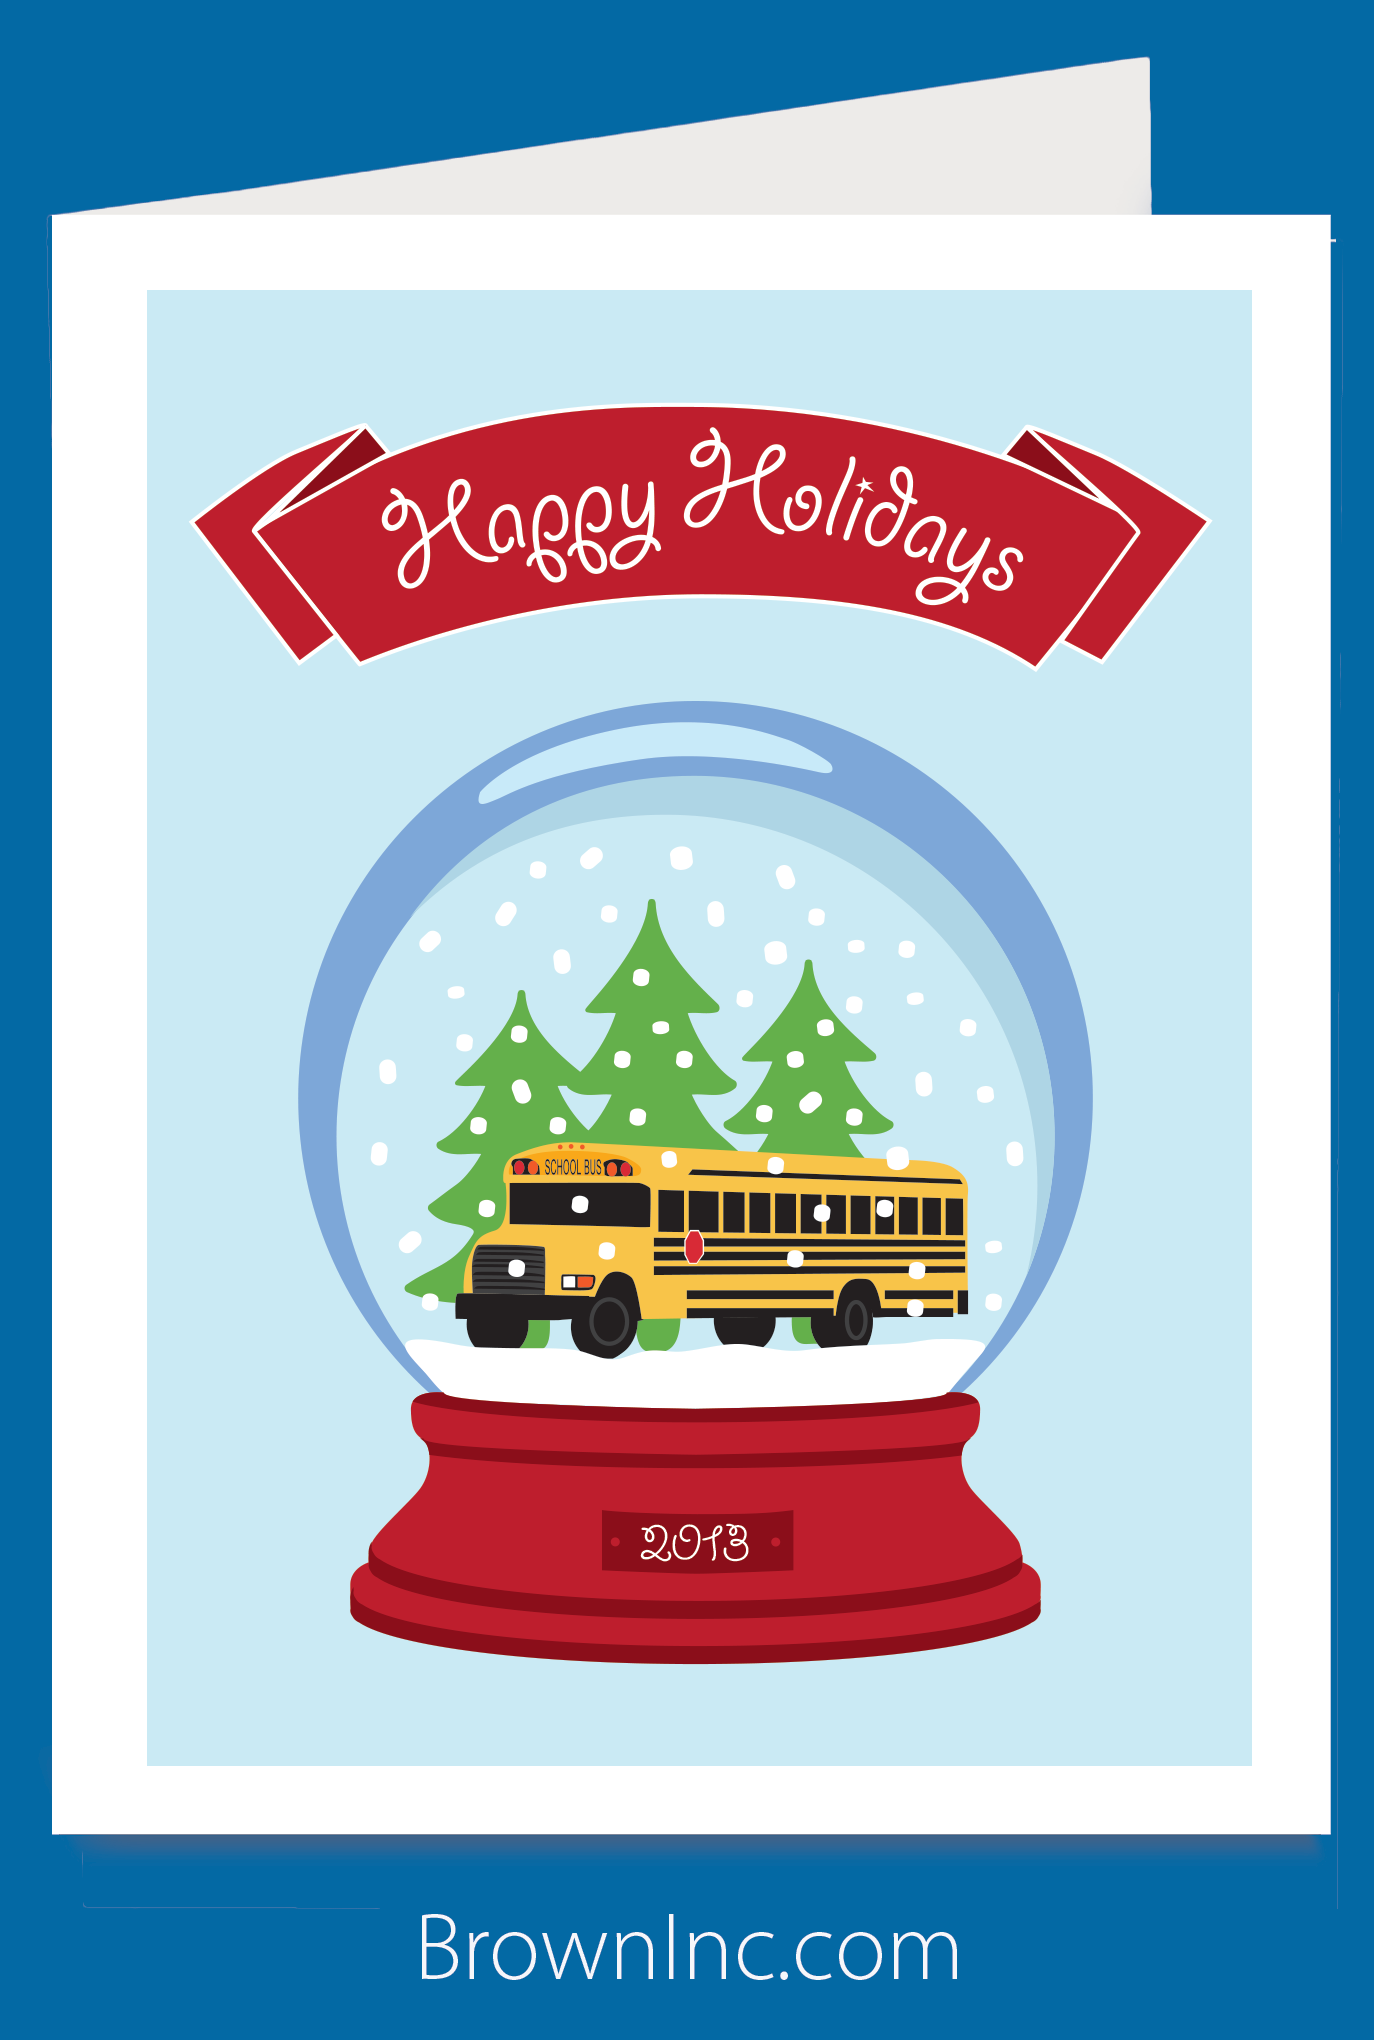 School Holiday Greeting Card Popular With Teachers Staff And Of